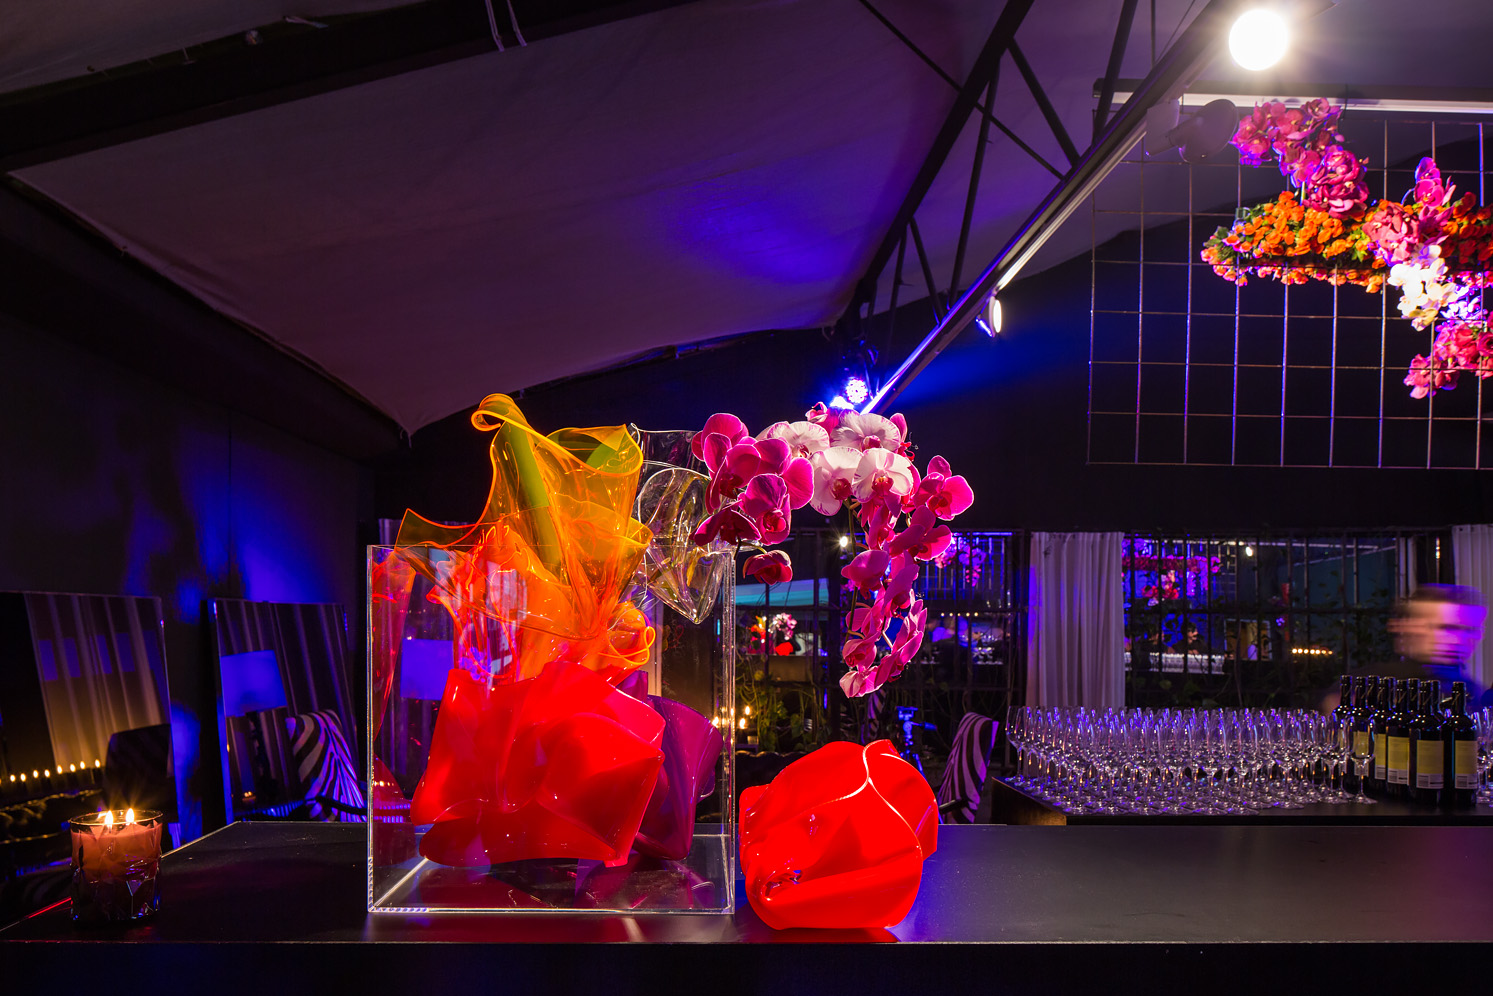 Belle Coco Republic Interior Design Awards 2014 Dominated By The